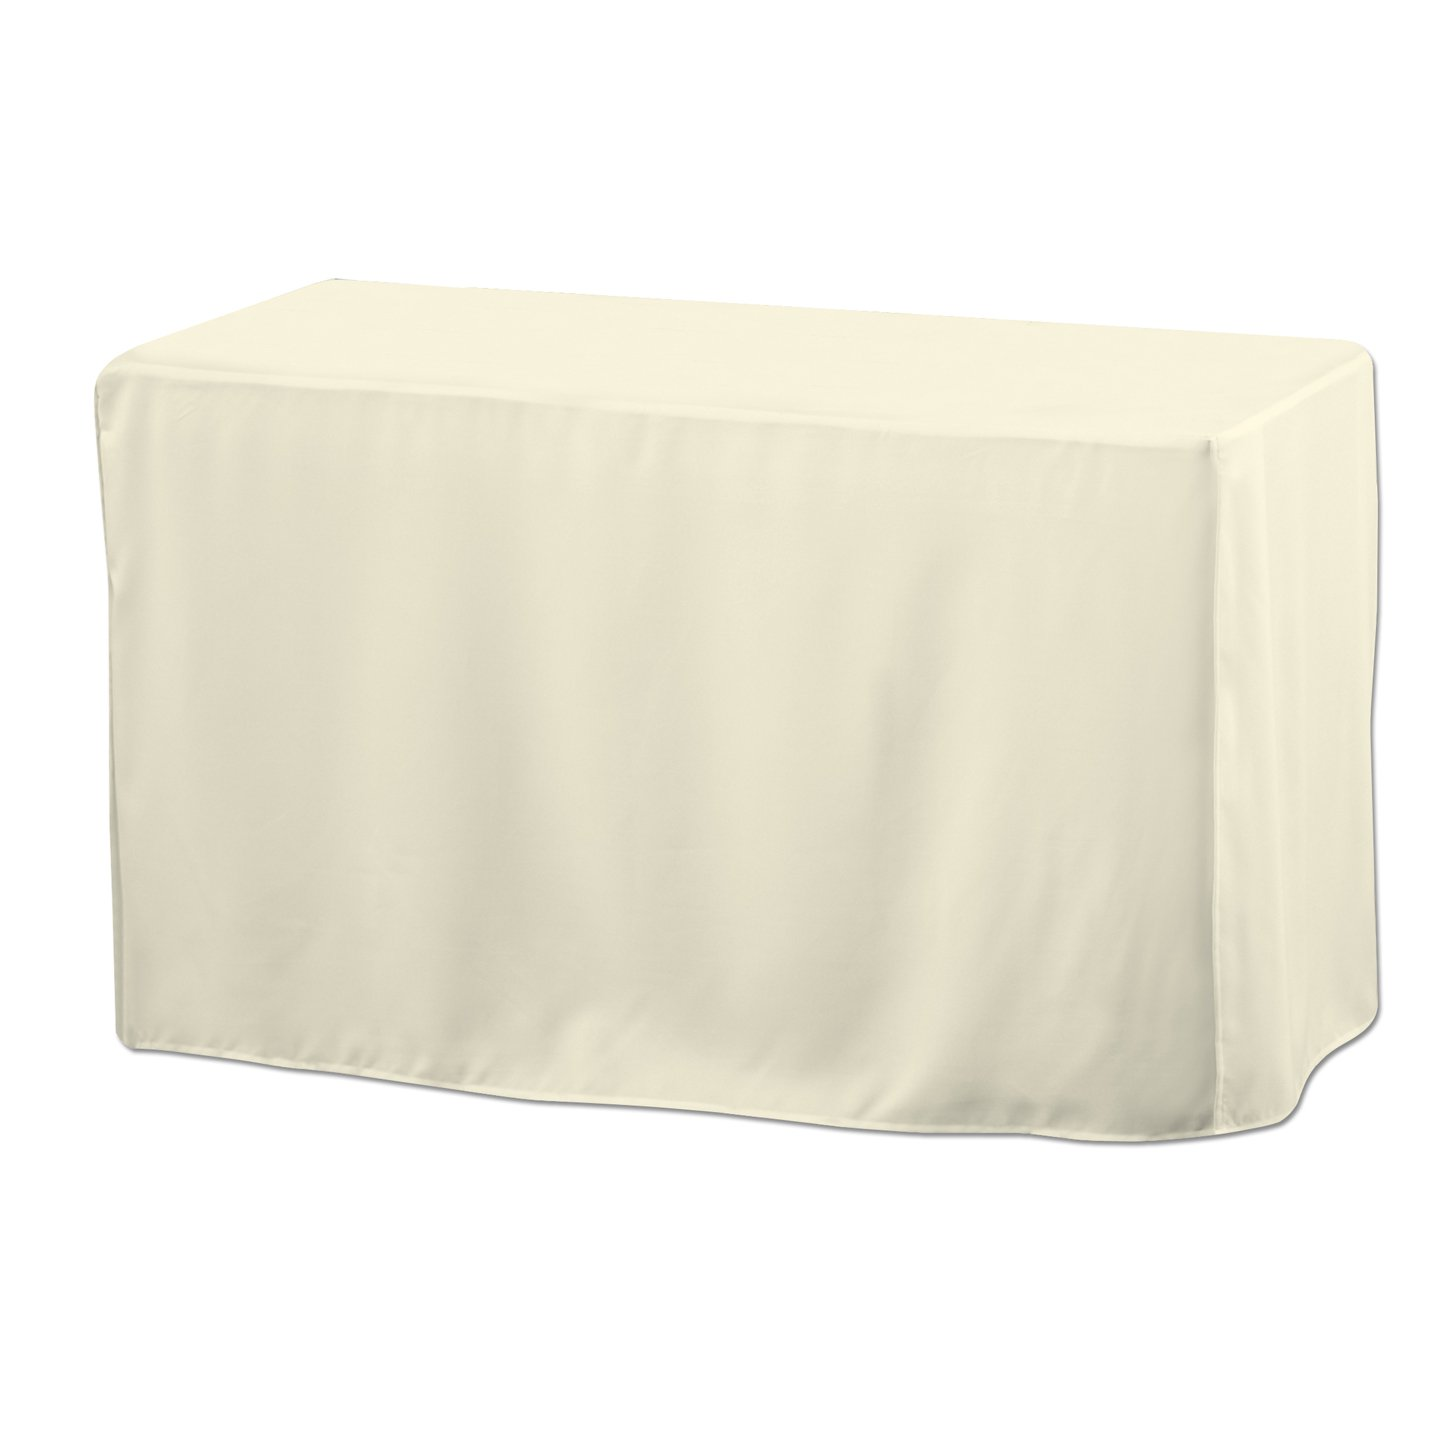 Picture of: Patio table cover rectangle